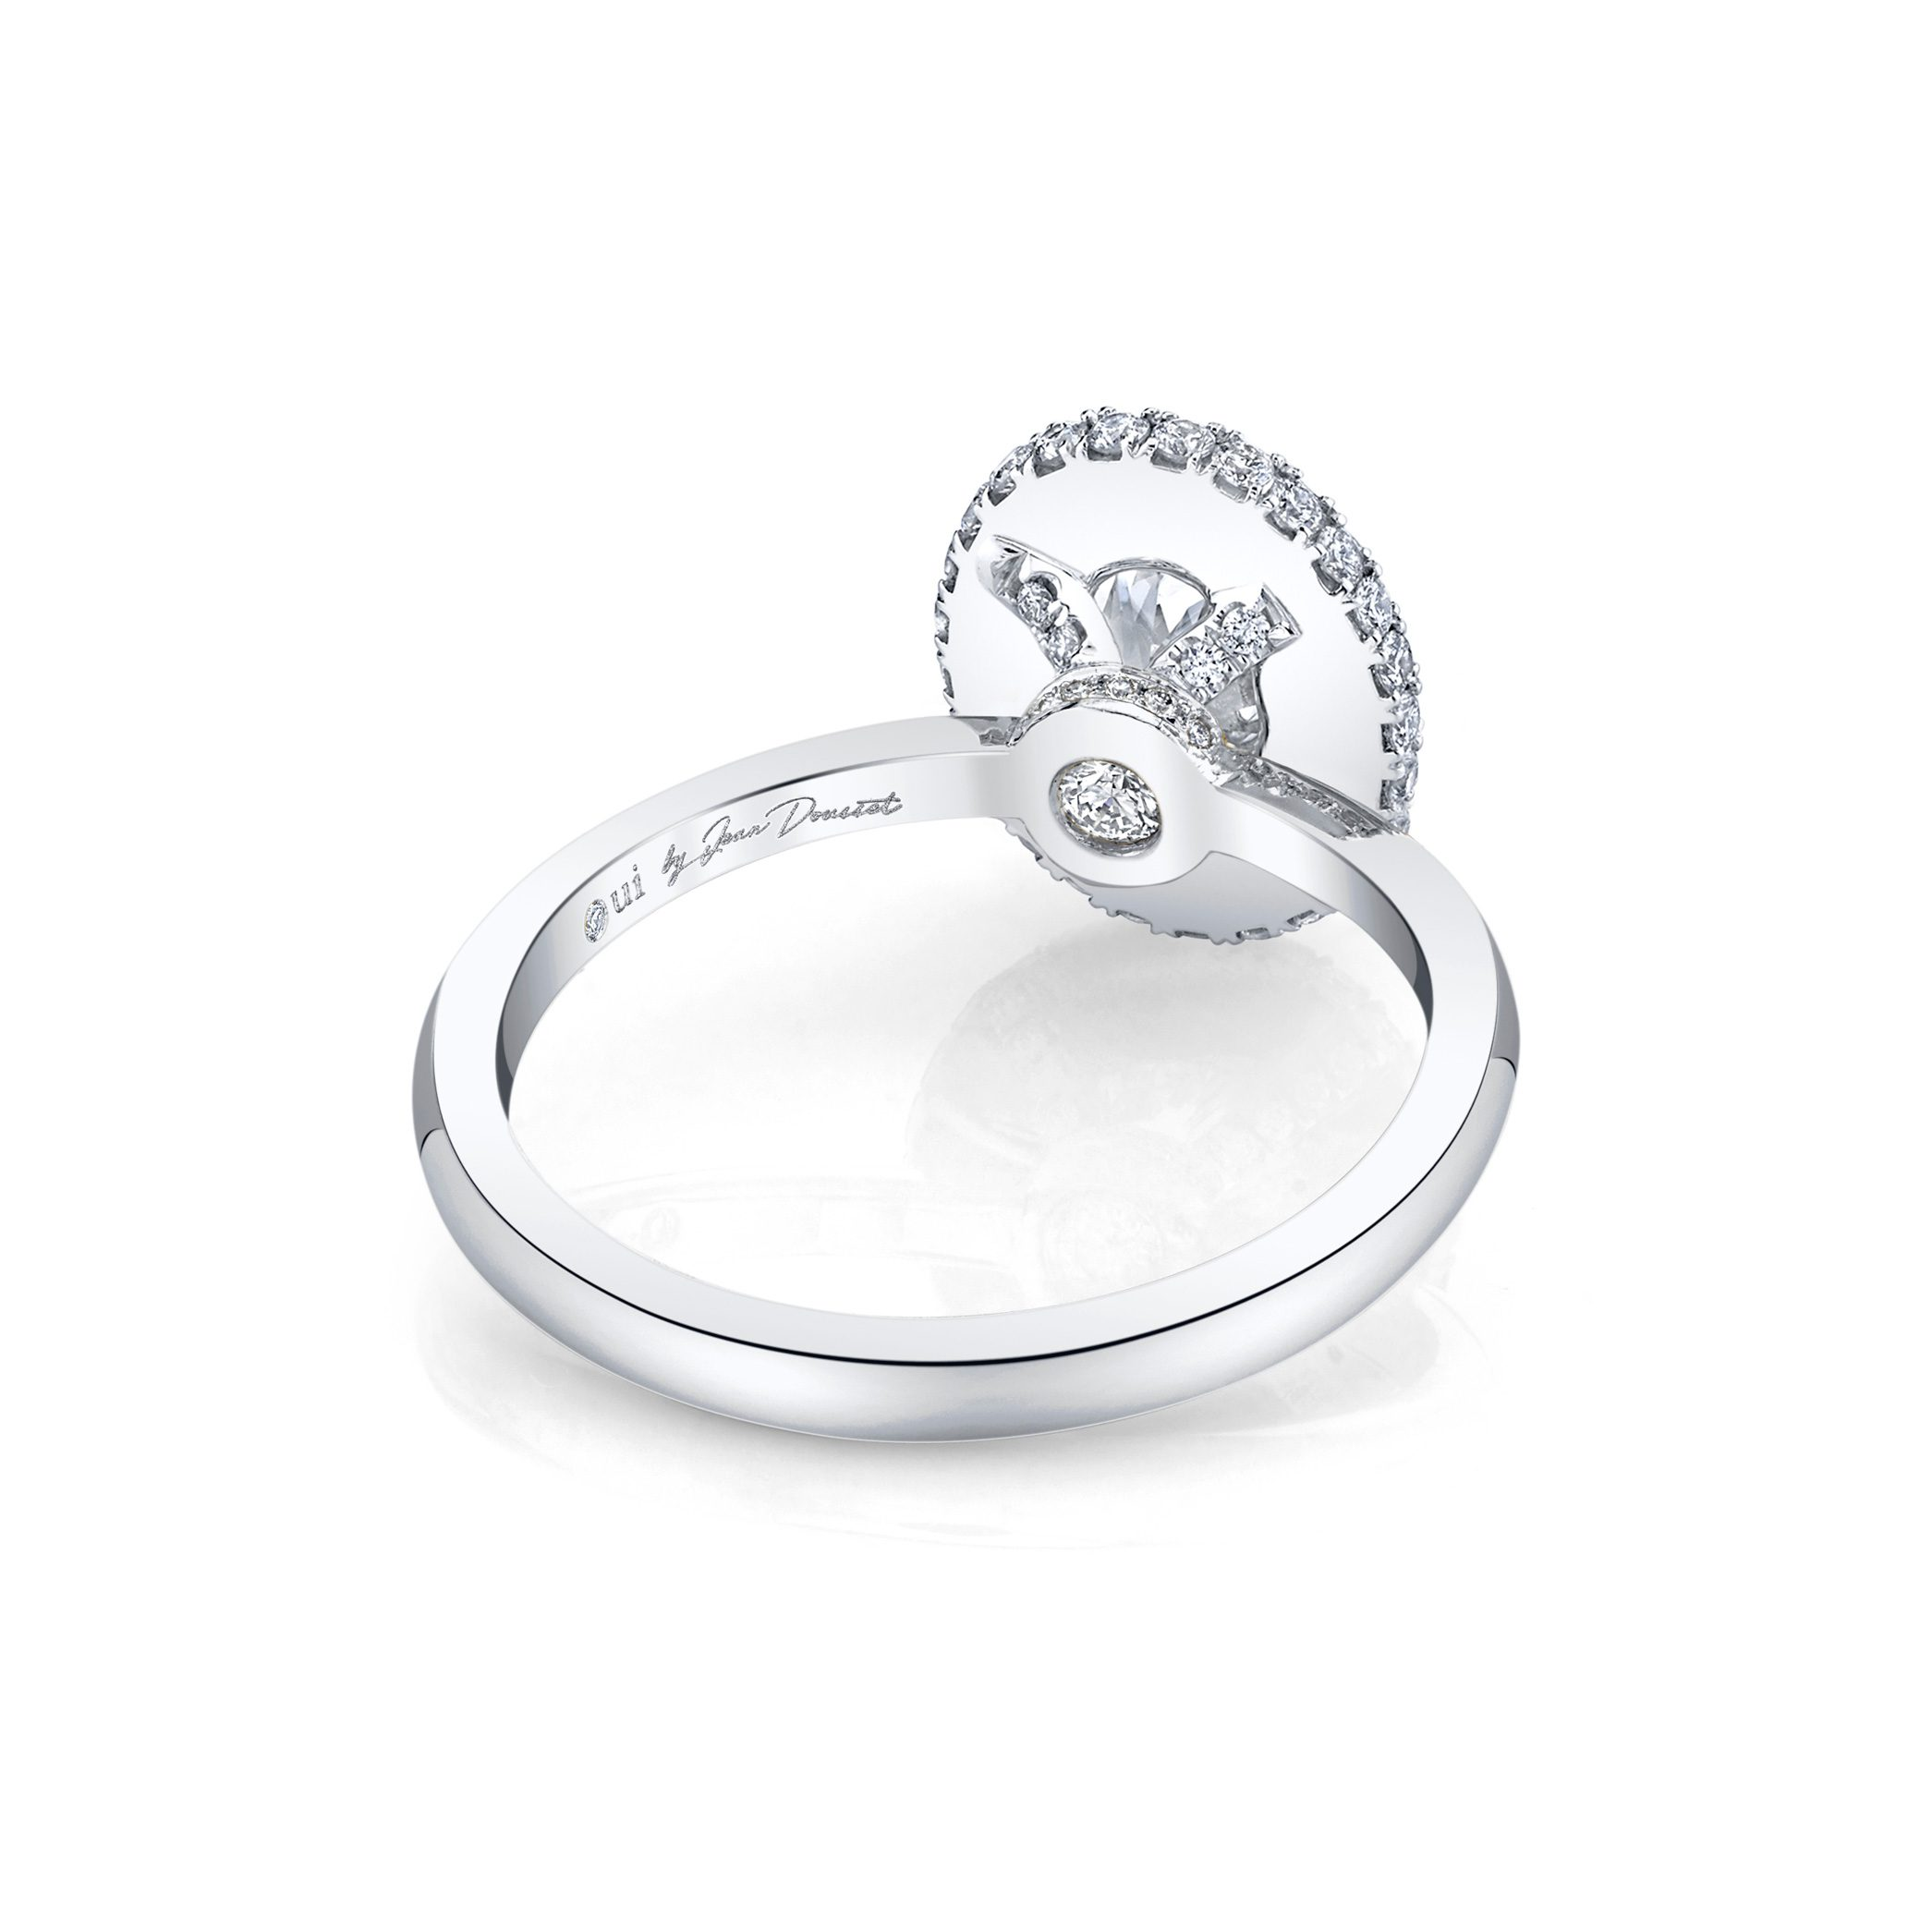 Colette Oval Seamless Halo® Engagement Ring with a solid band in 18k White Gold by Oui Back View by Jean Dousset